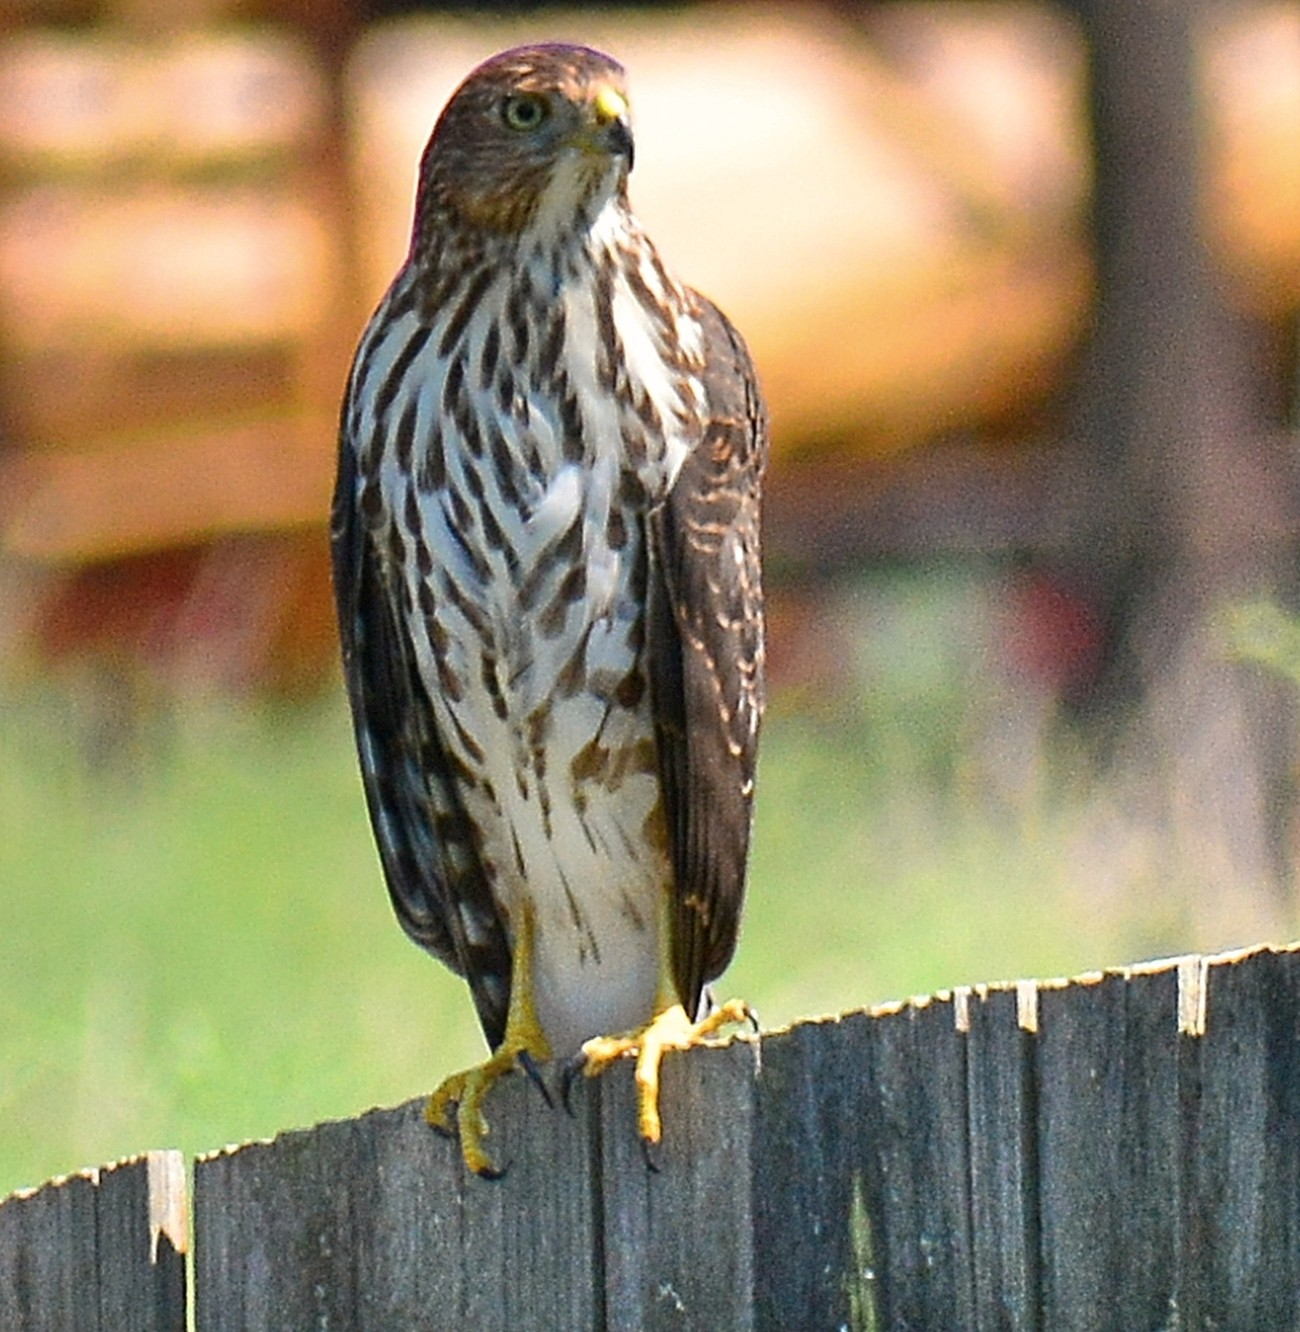 Able to get a shot of this Cooper Hawk one afternoon as he posed on my back fence.